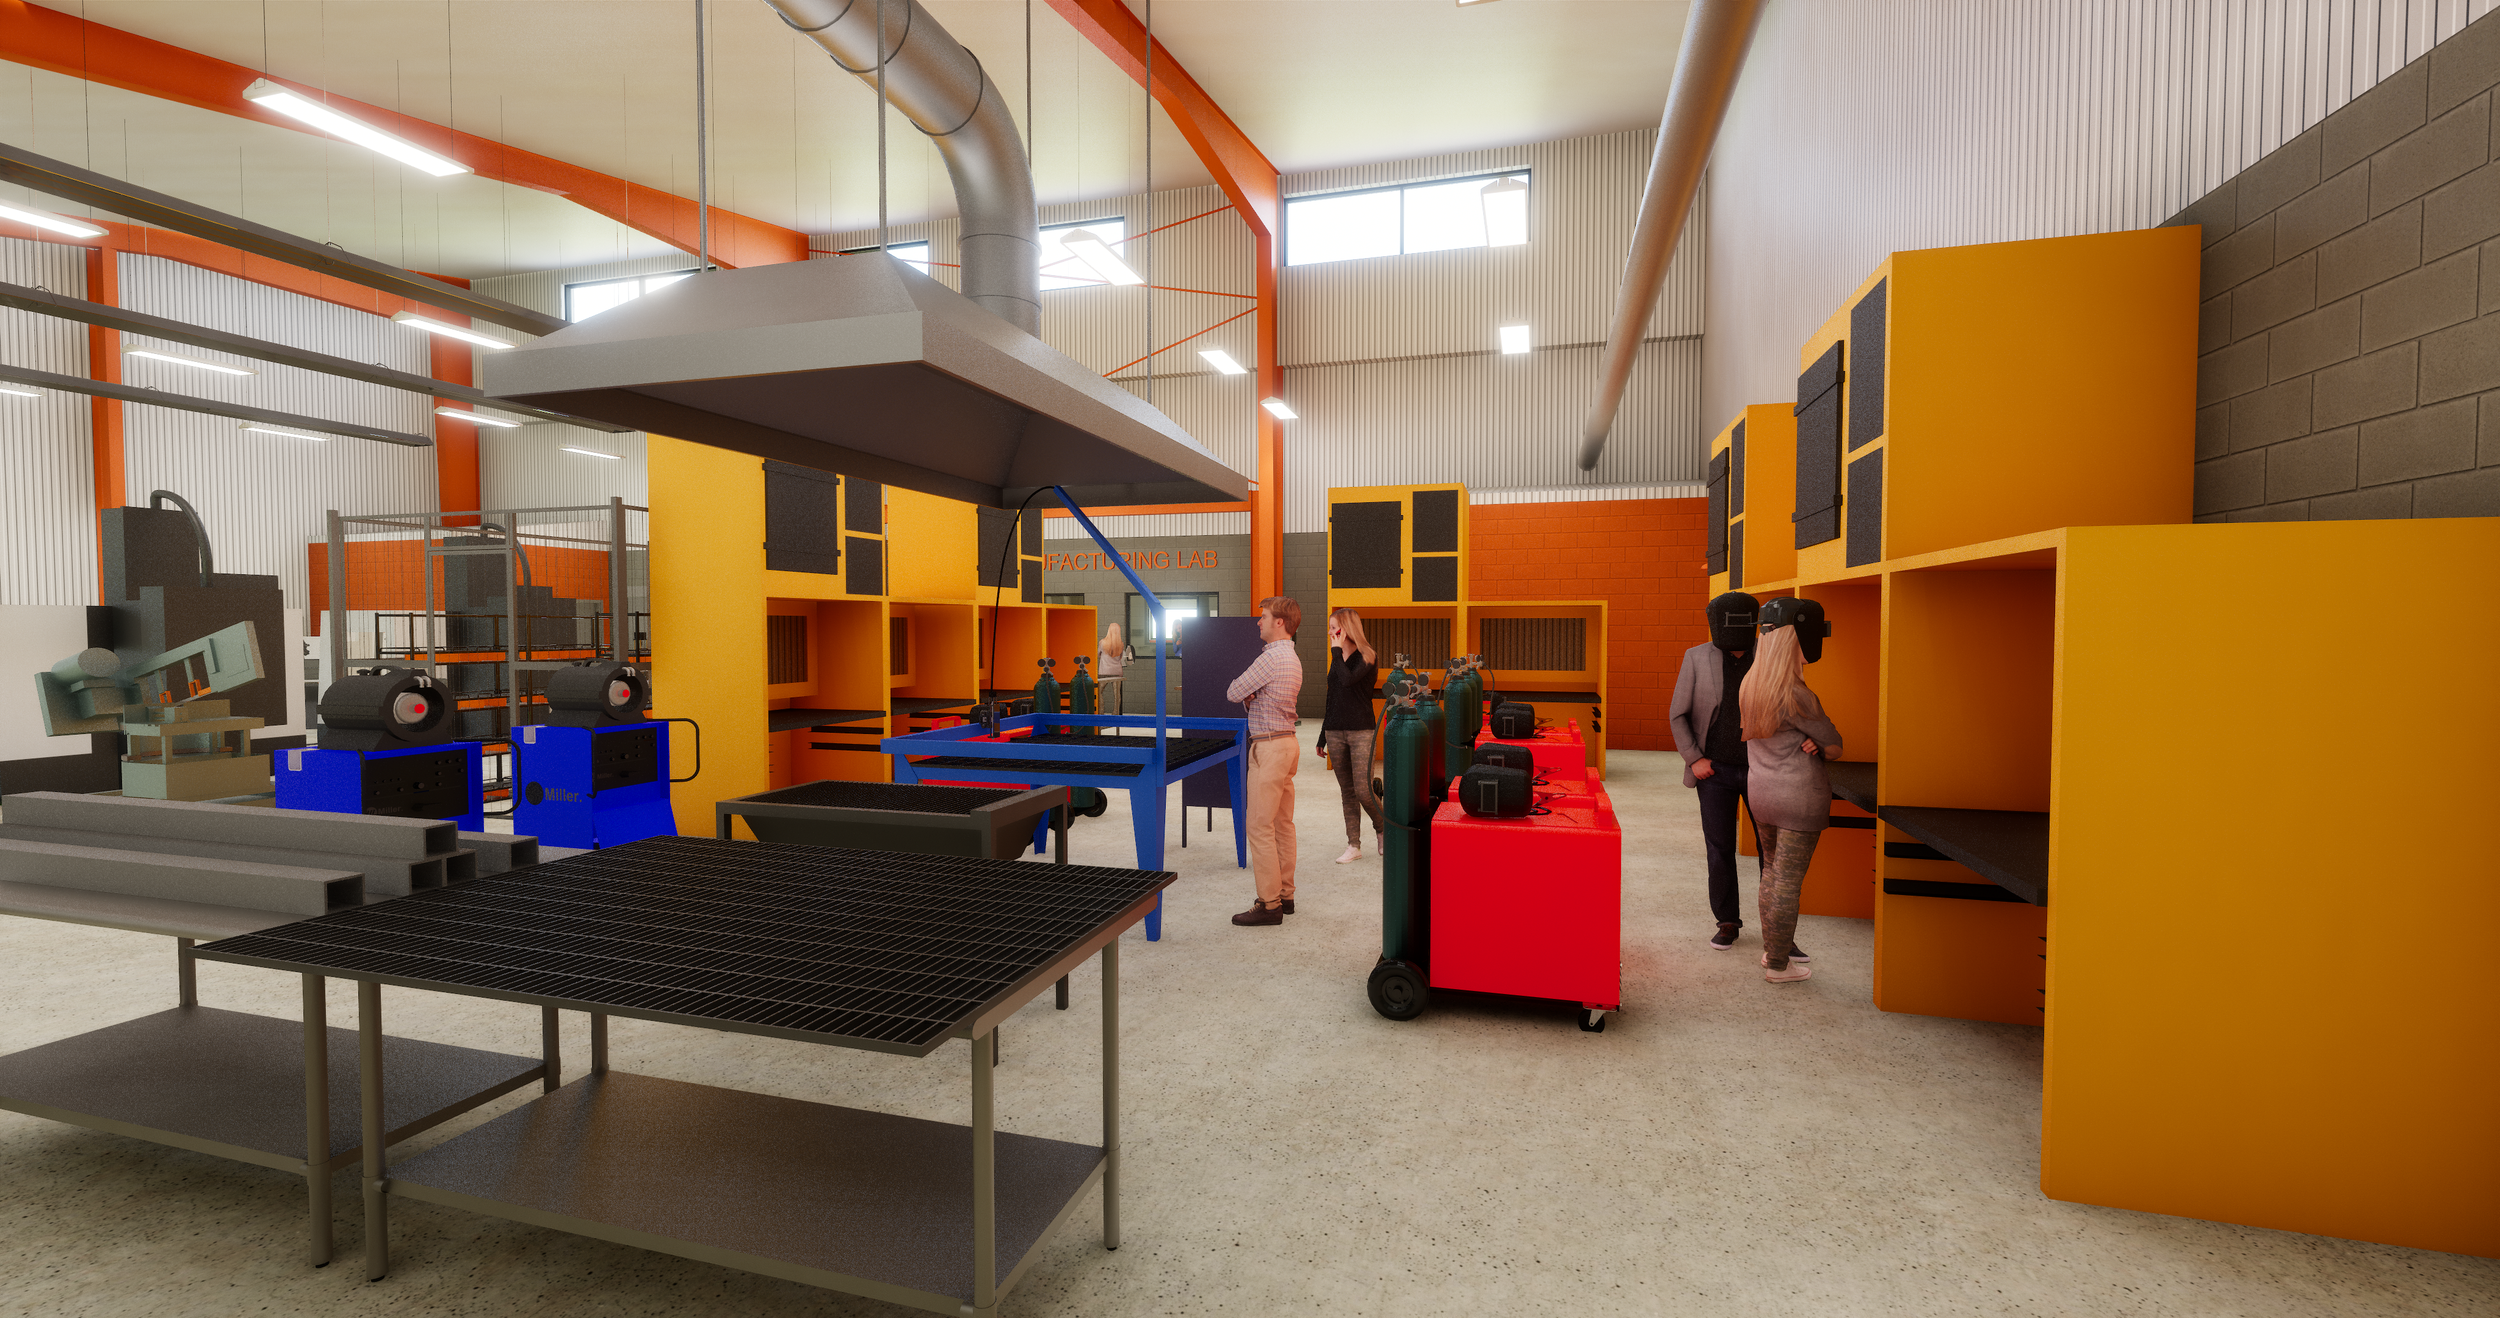 3D Rendering from Enscape showing the Welding Lab in the Technology and Innovation Center